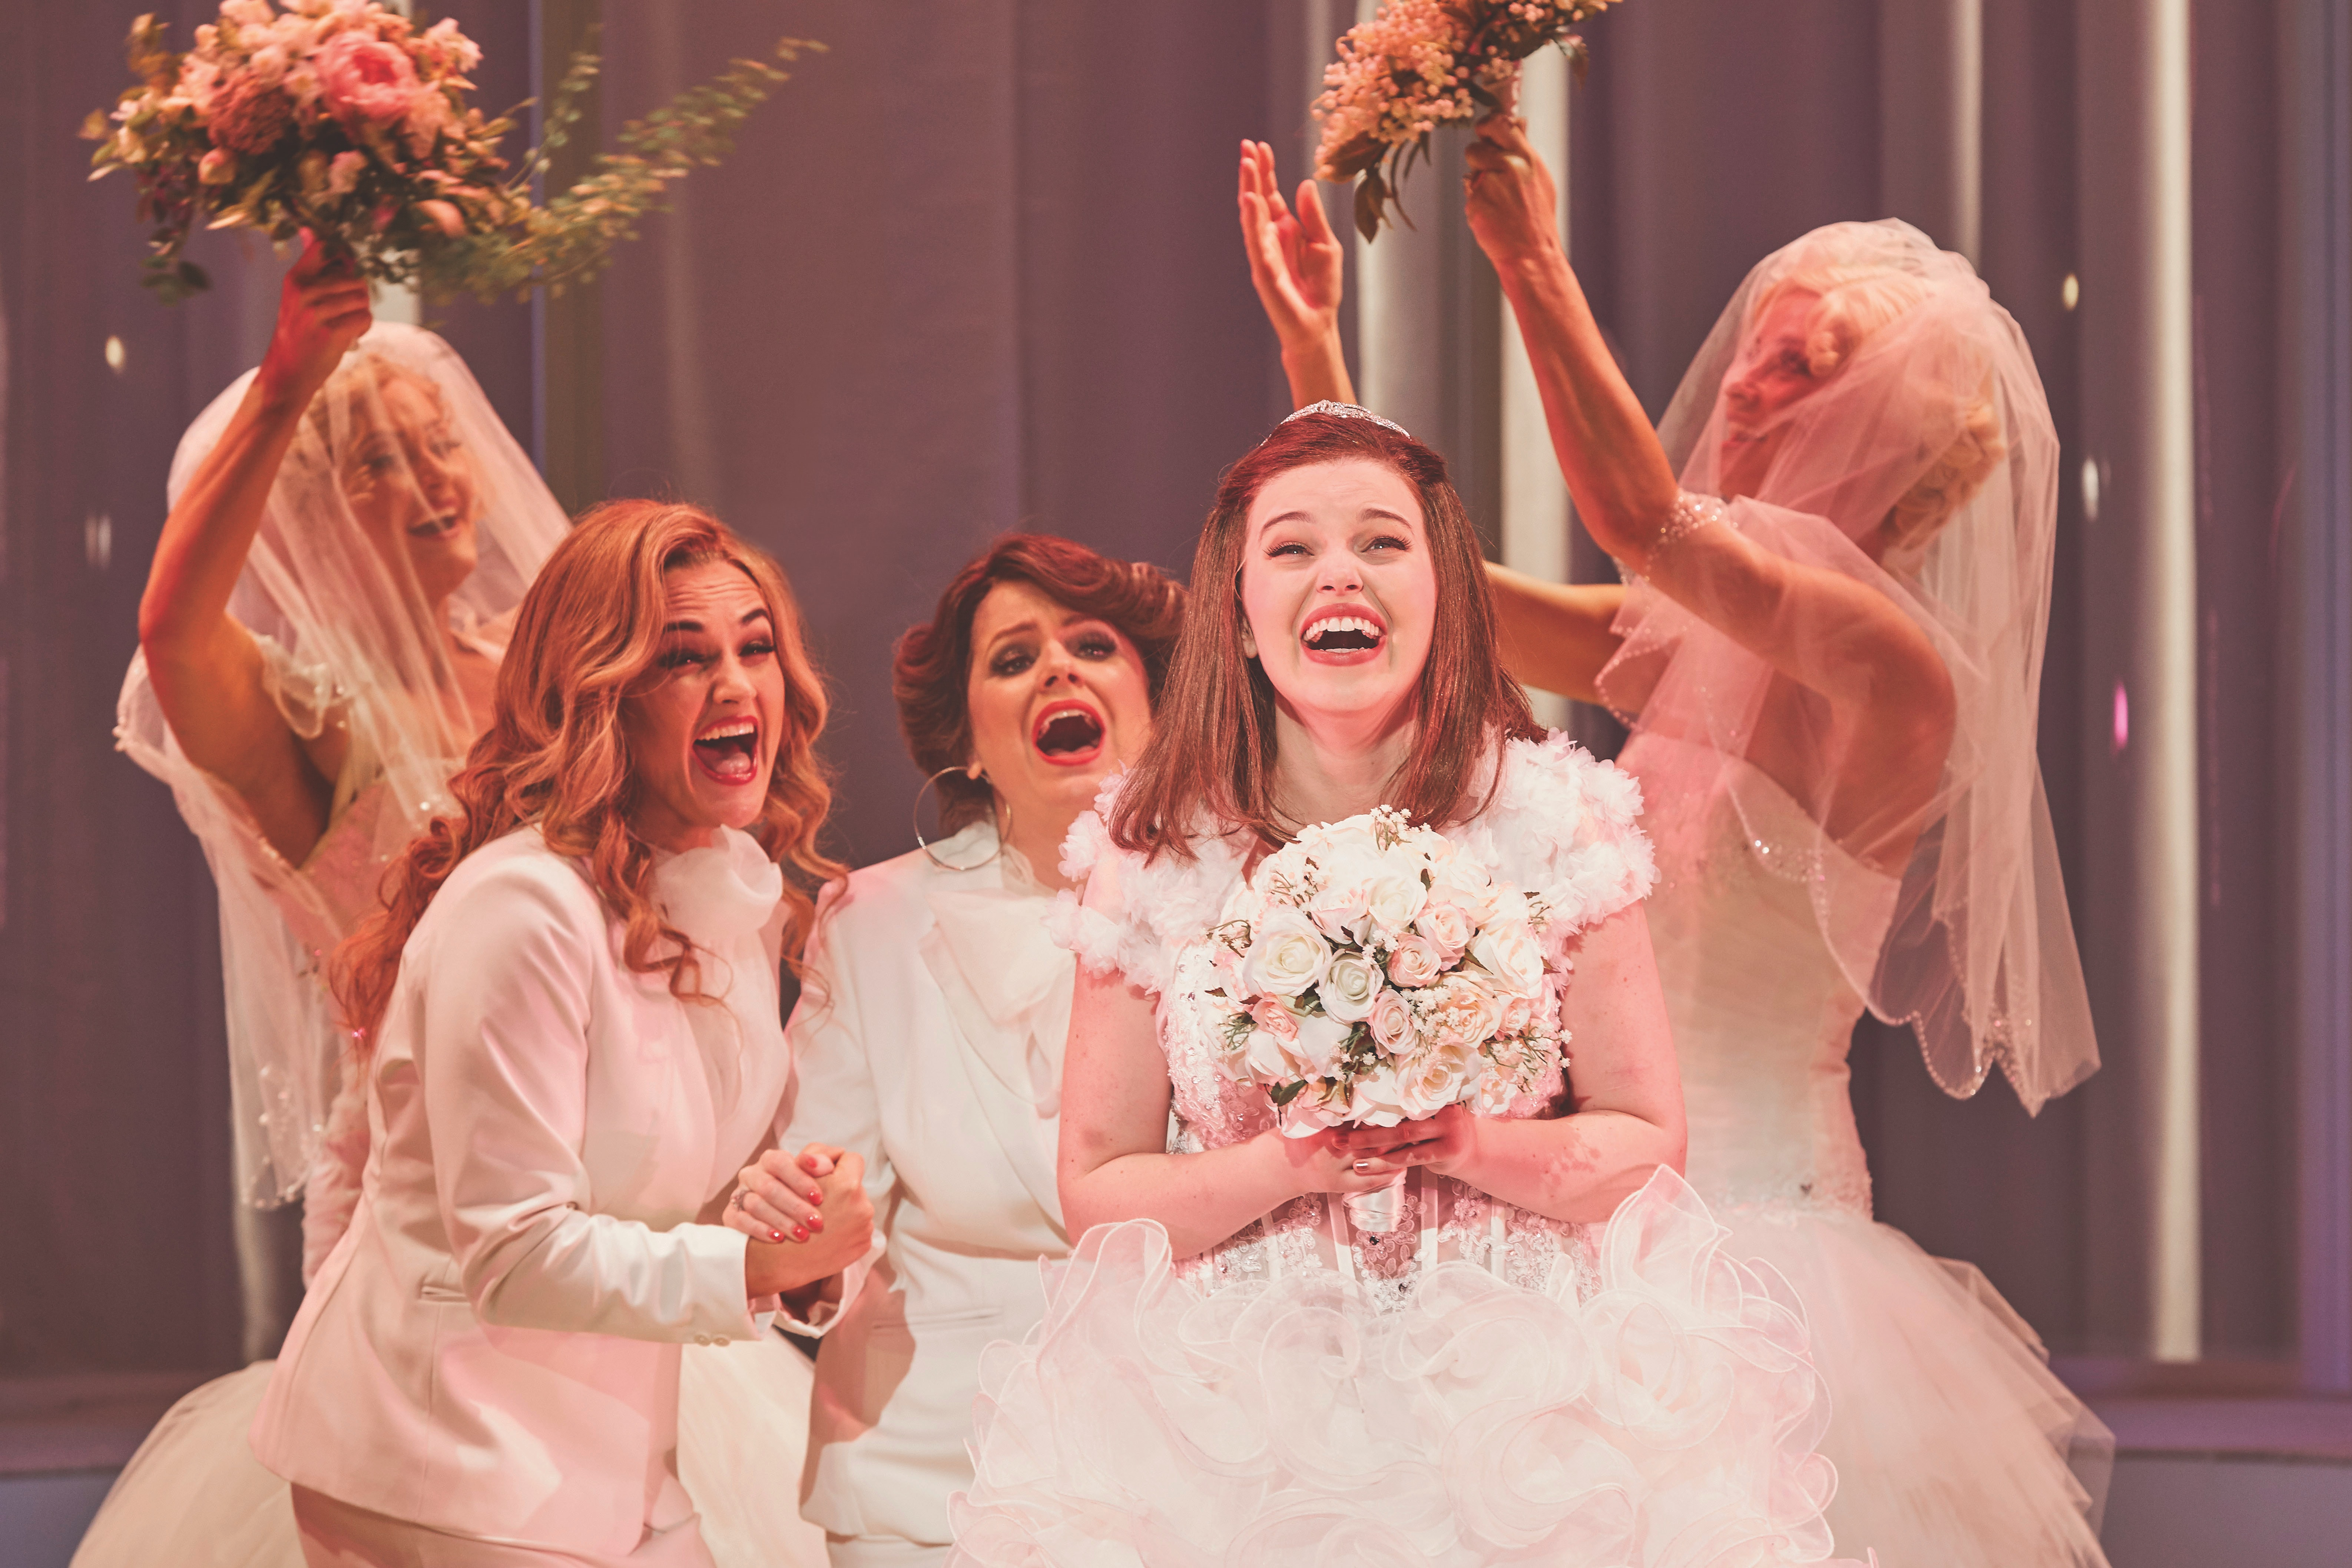 muriel s wedding critical analysis Magazines2 muriel's wedding is an 'off-beat' comedy that is both a celebration  and an ambivalent critique of white wedding culture3 while these forms might.